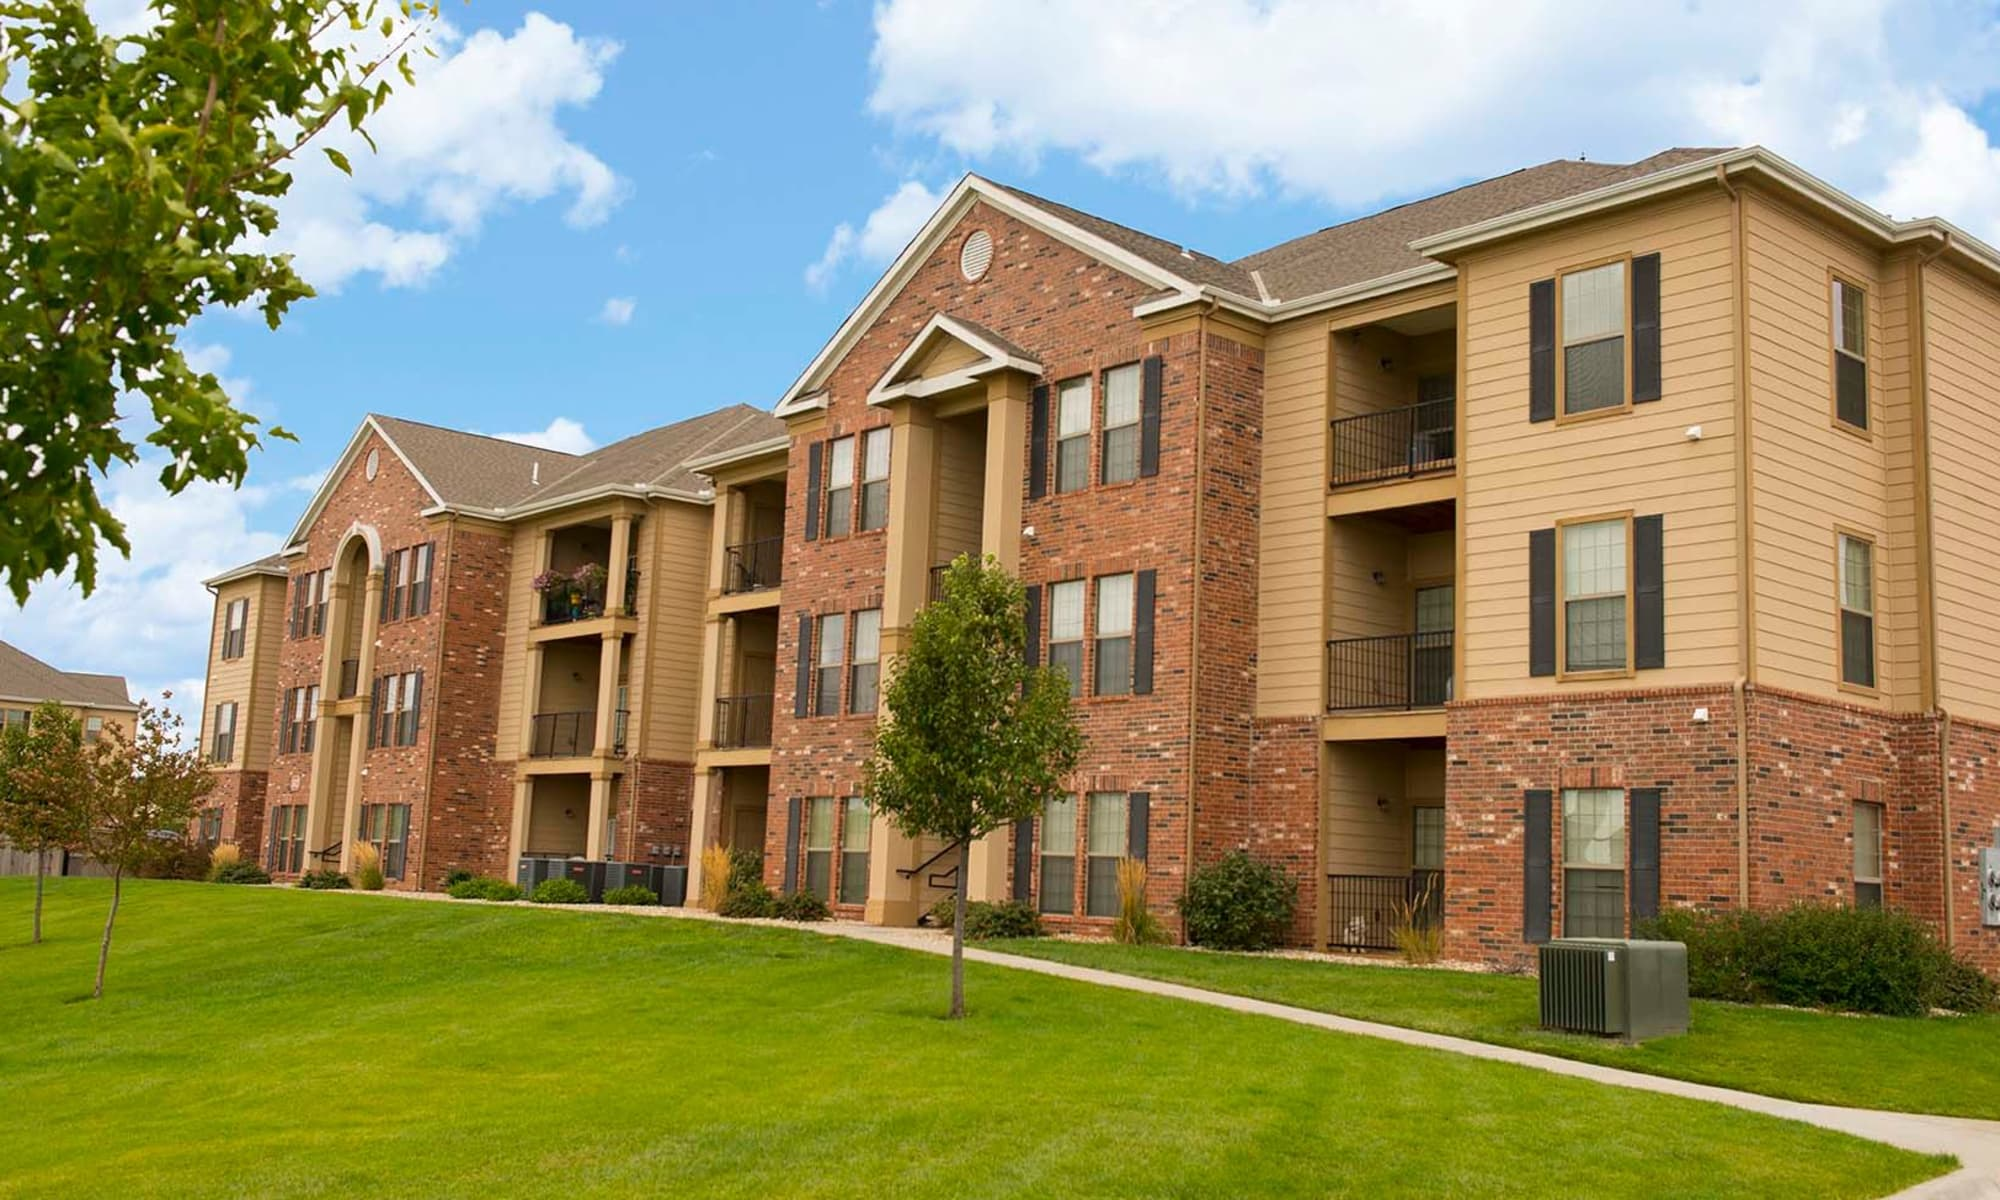 Manhattan Ks Apartments For Rent Near Campus